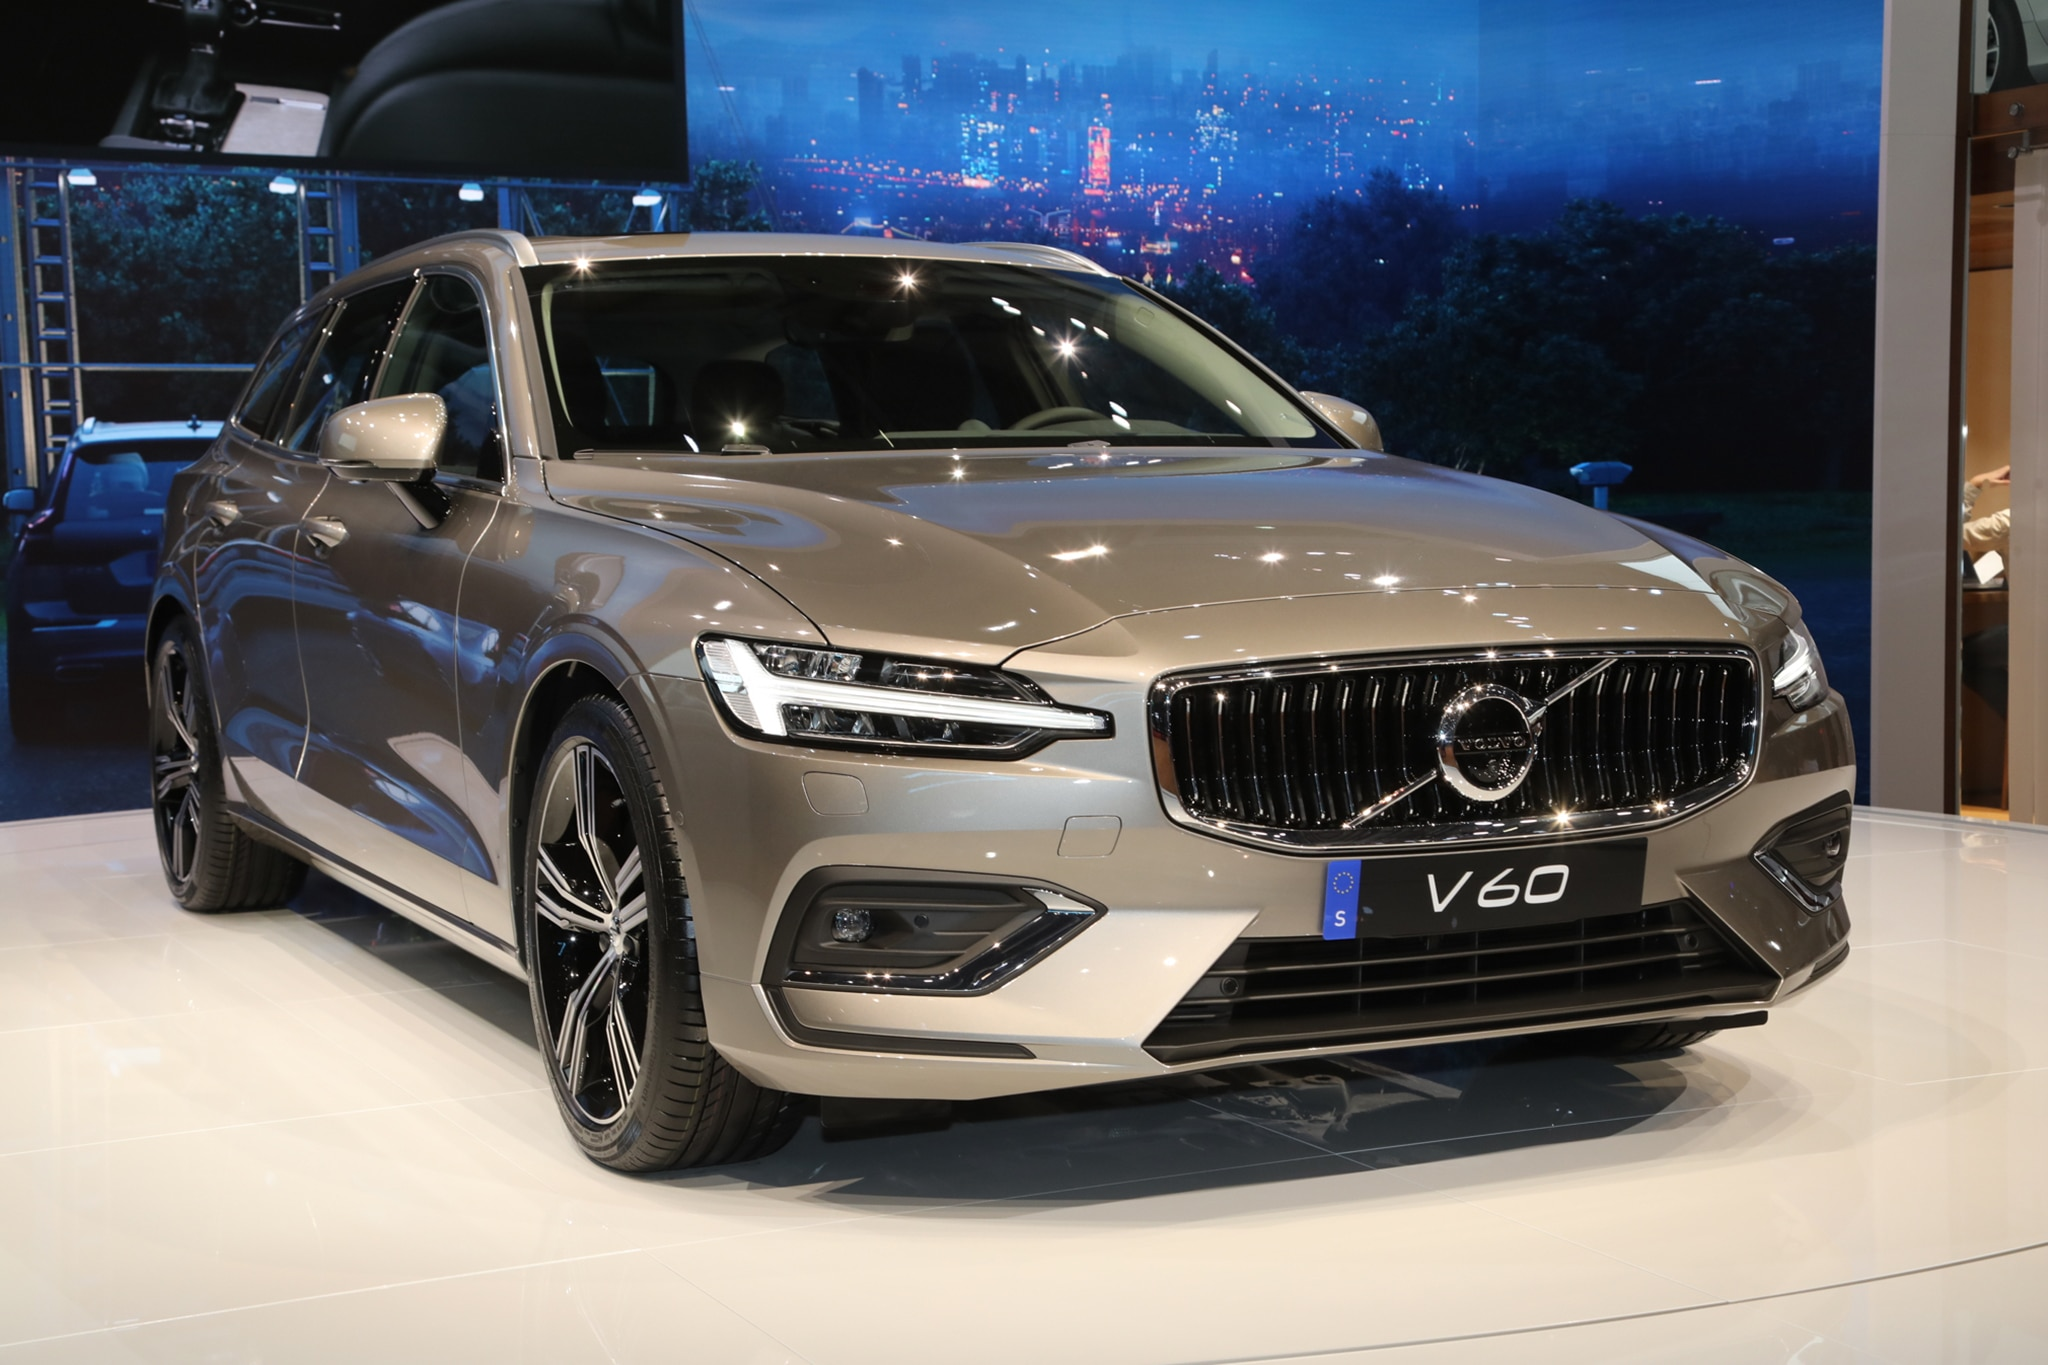 2019 Volvo V60 Joins The Geneva Auto Show Automobile